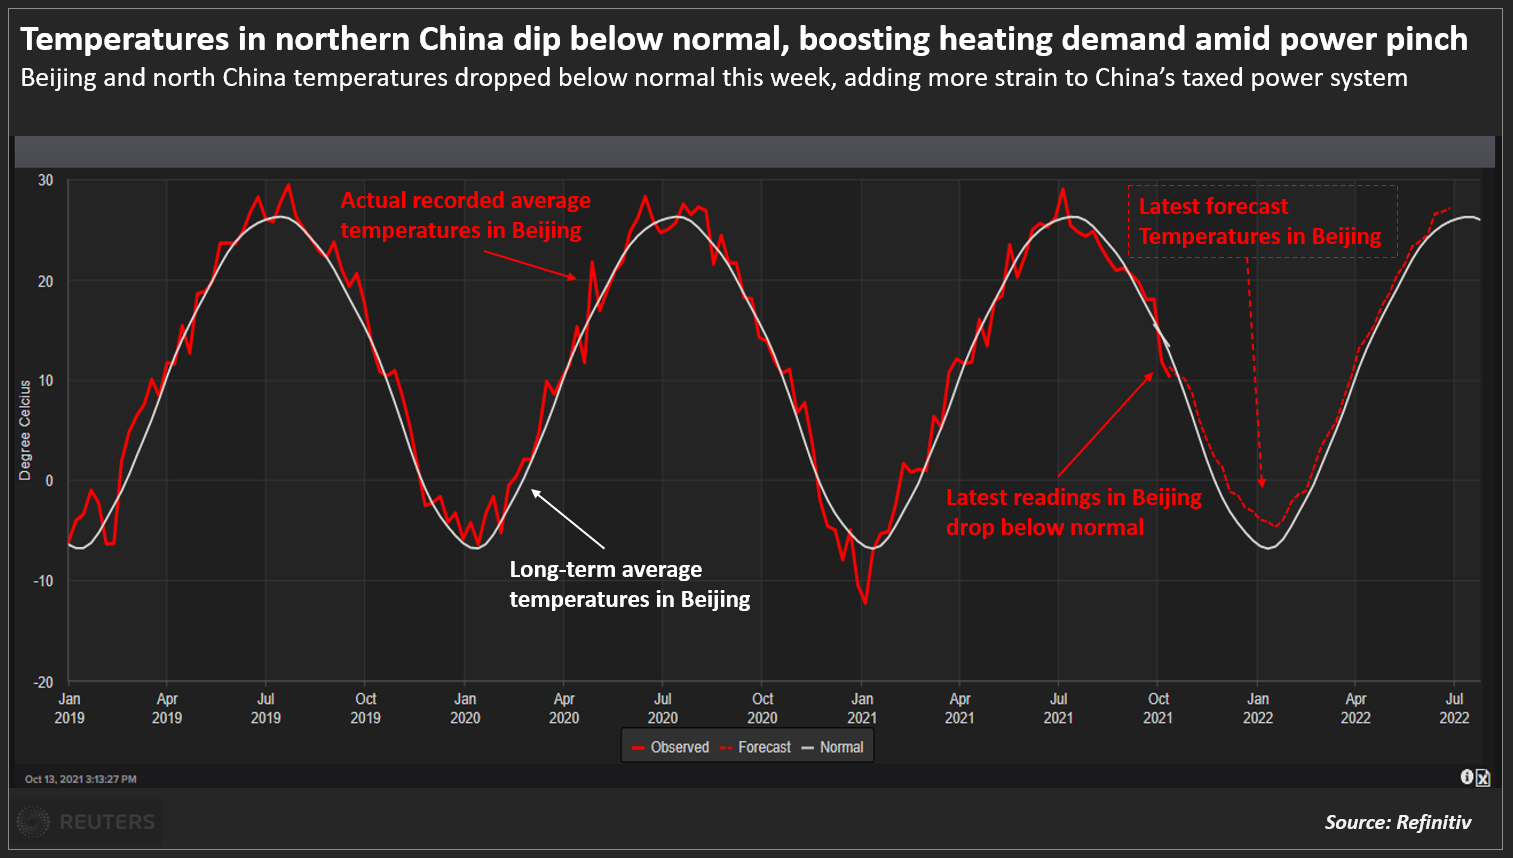 Temperatures in northern China dip below normal, boosting heating demand amid power pinch